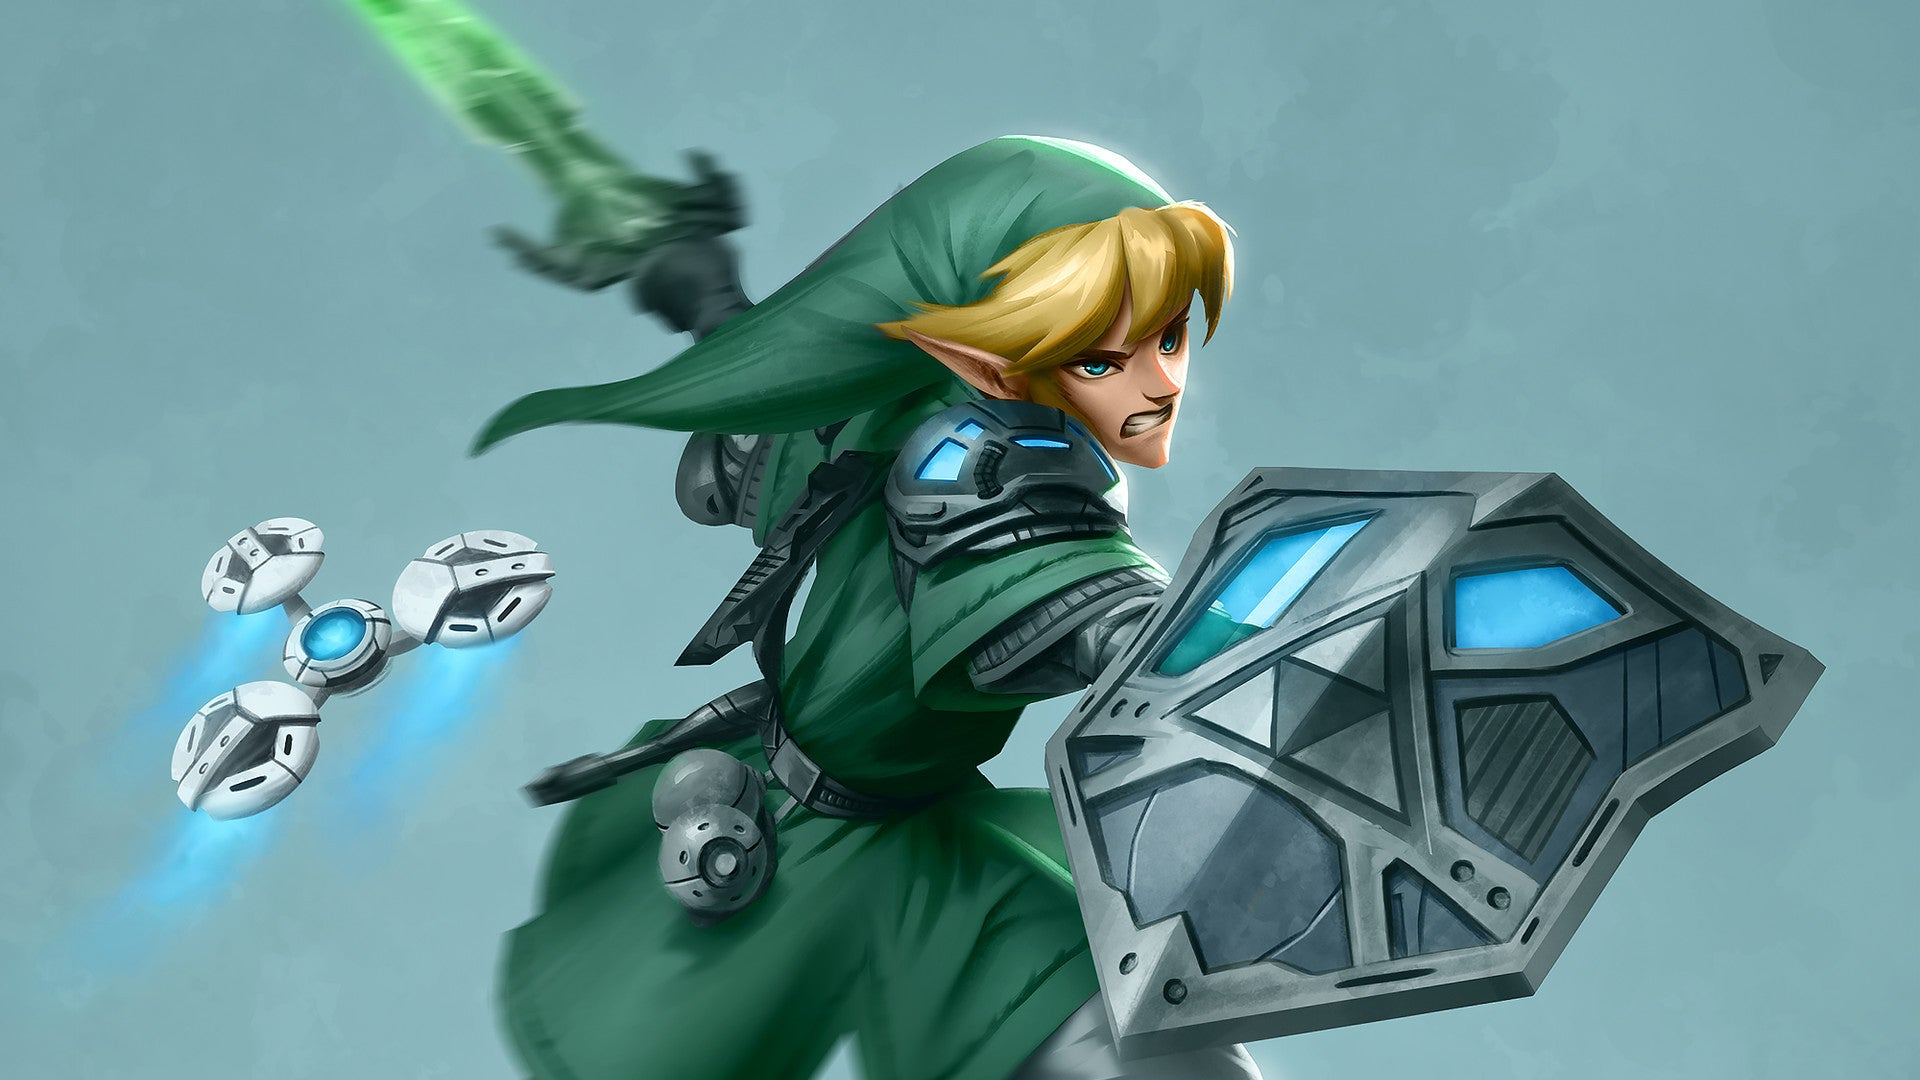 If Future Link Gets Sick of Navi, He Can Just Remove Her Batteries